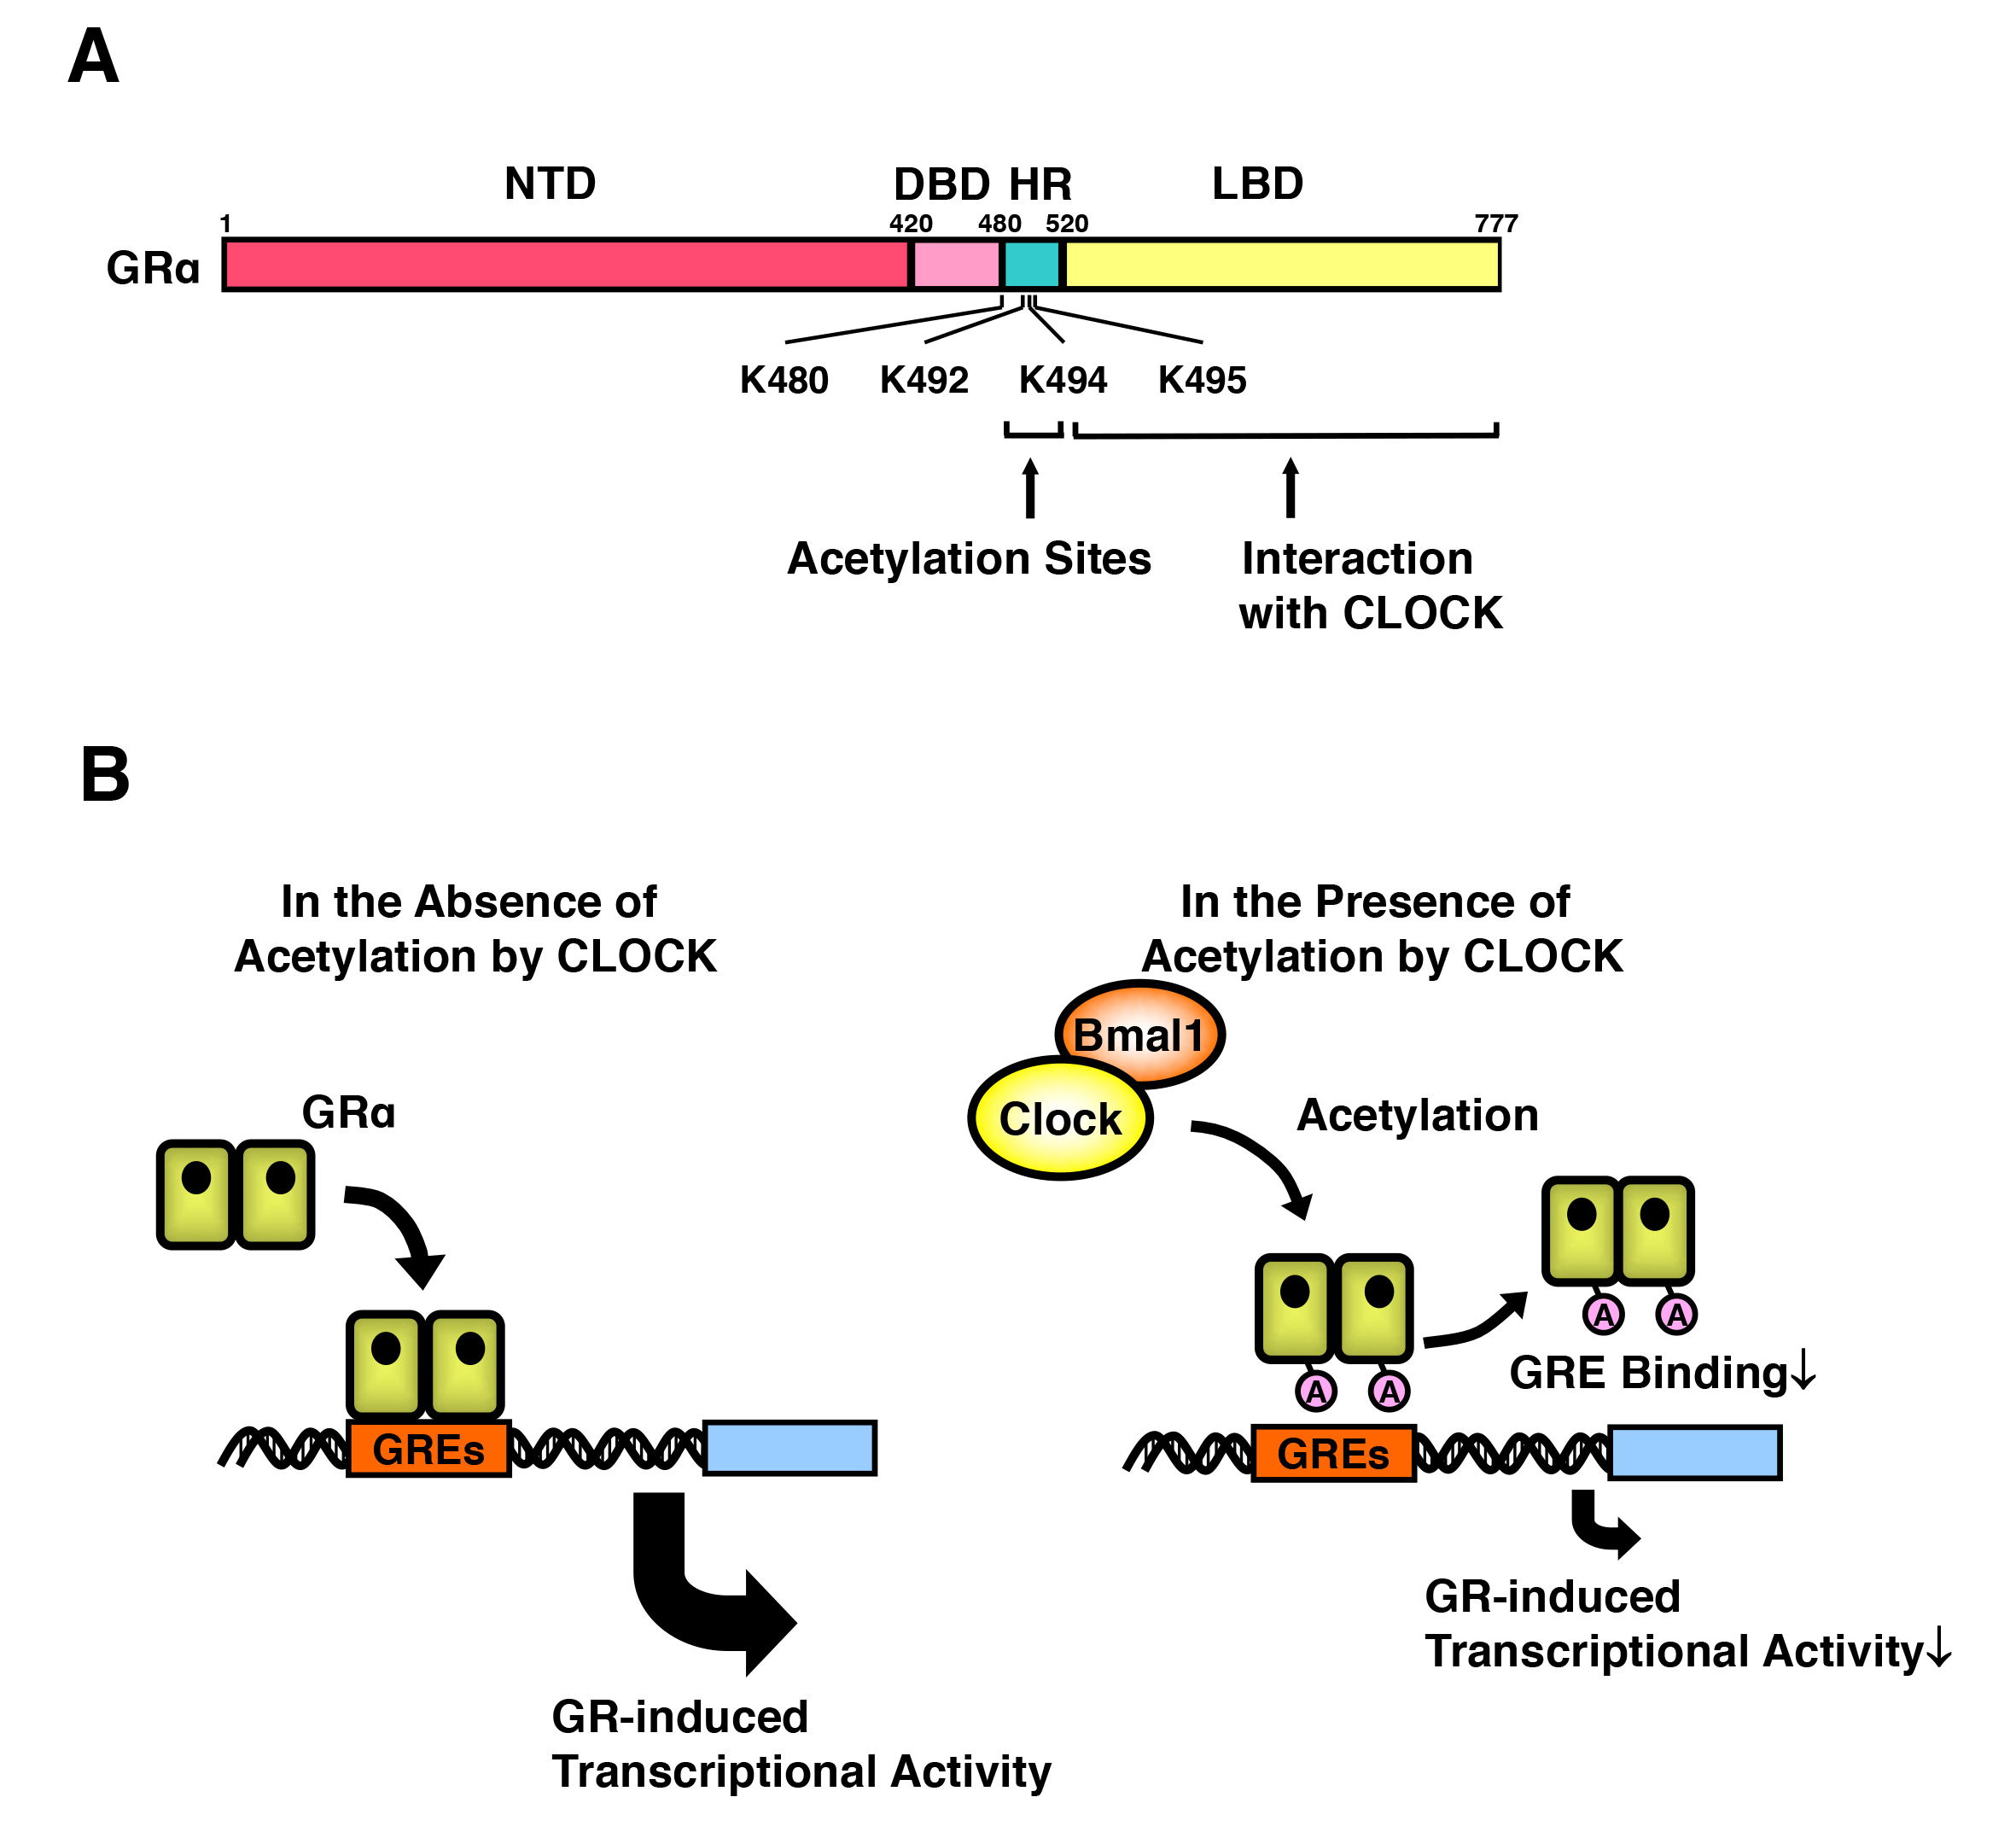 Chapters Archive Page 16 Of 35 Endotext Gardner Bender Circuit Tester L M Fleet Supply Figure 15 Clock Bmal1 Suppresses Gr Induced Transcriptional Activity Through Acetylation Physically Interacts With Lbd Its Nuclear